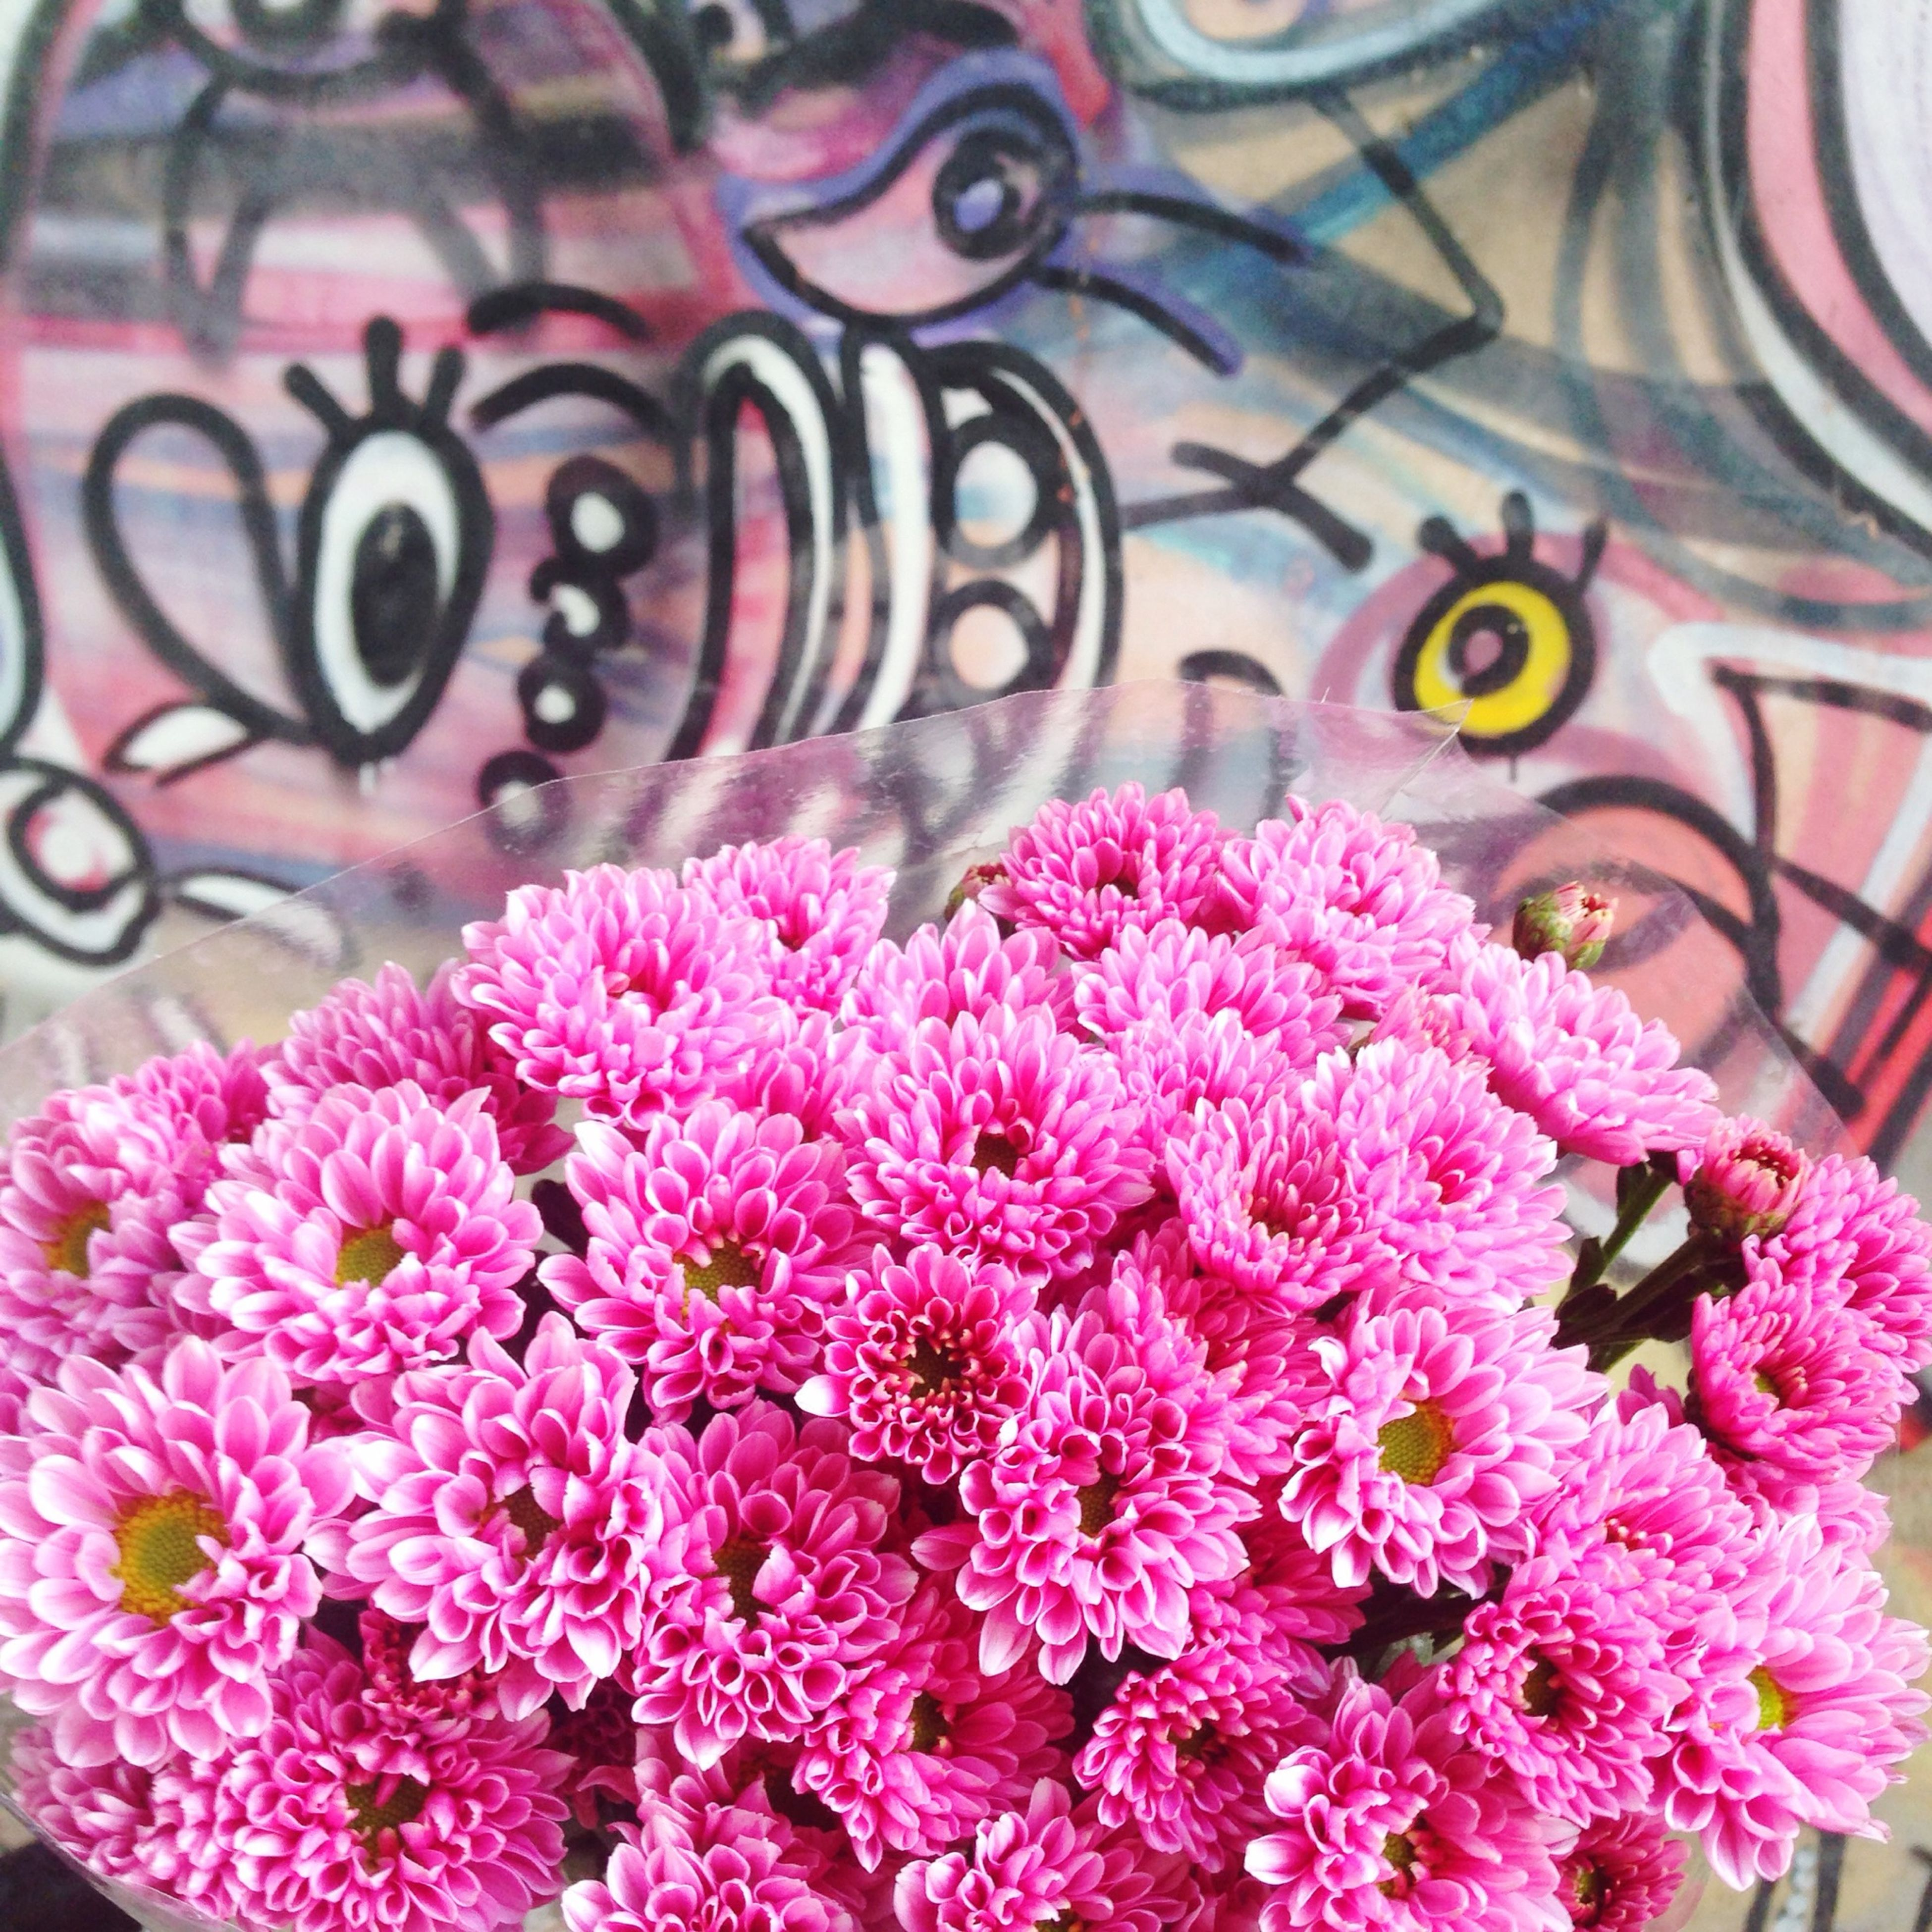 flower, freshness, pink color, petal, fragility, flower head, beauty in nature, close-up, nature, blooming, multi colored, growth, plant, pink, high angle view, indoors, focus on foreground, no people, in bloom, bouquet